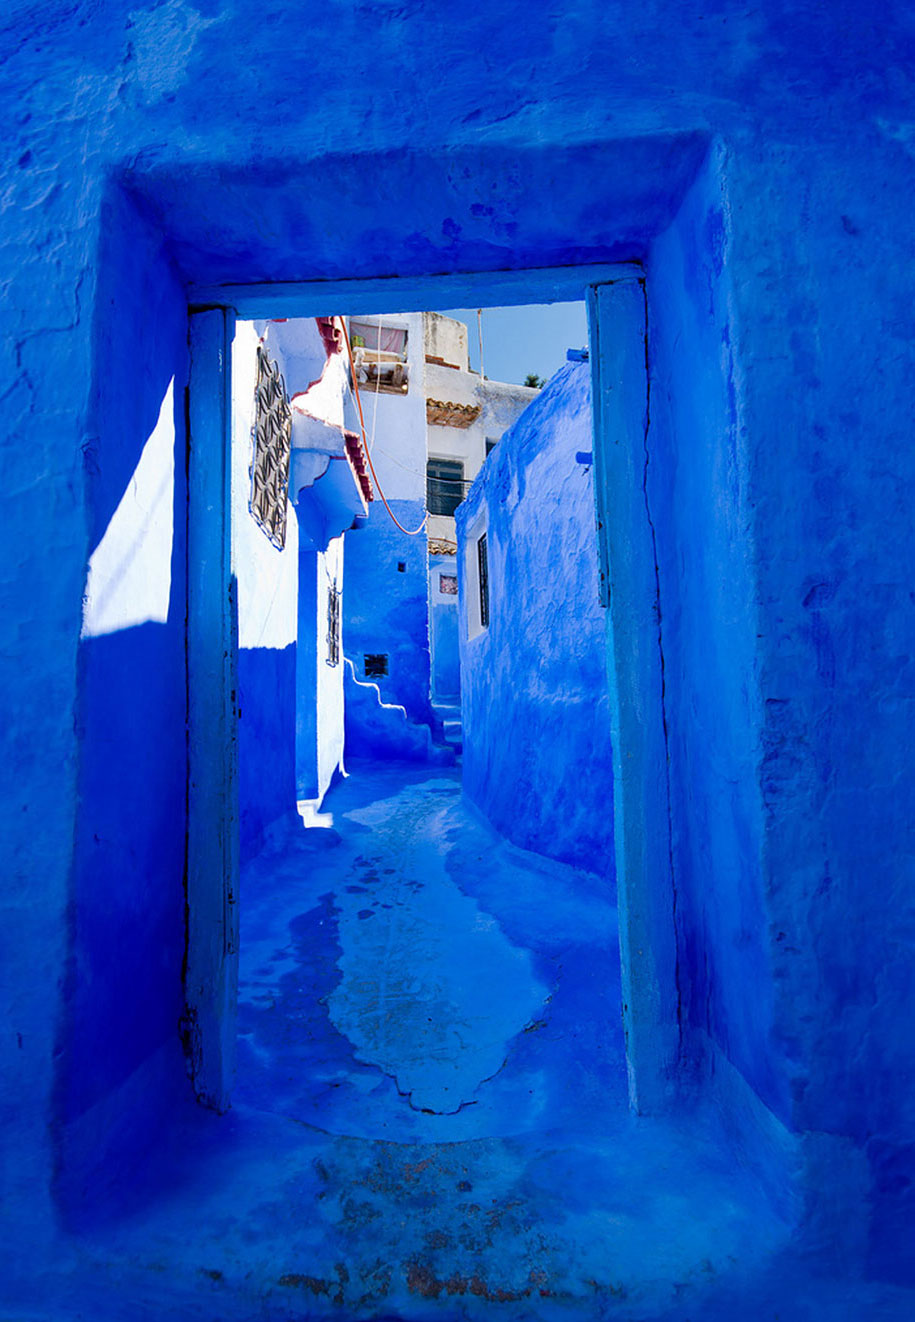 blue-town-walls-chefchaouen-morocco-12